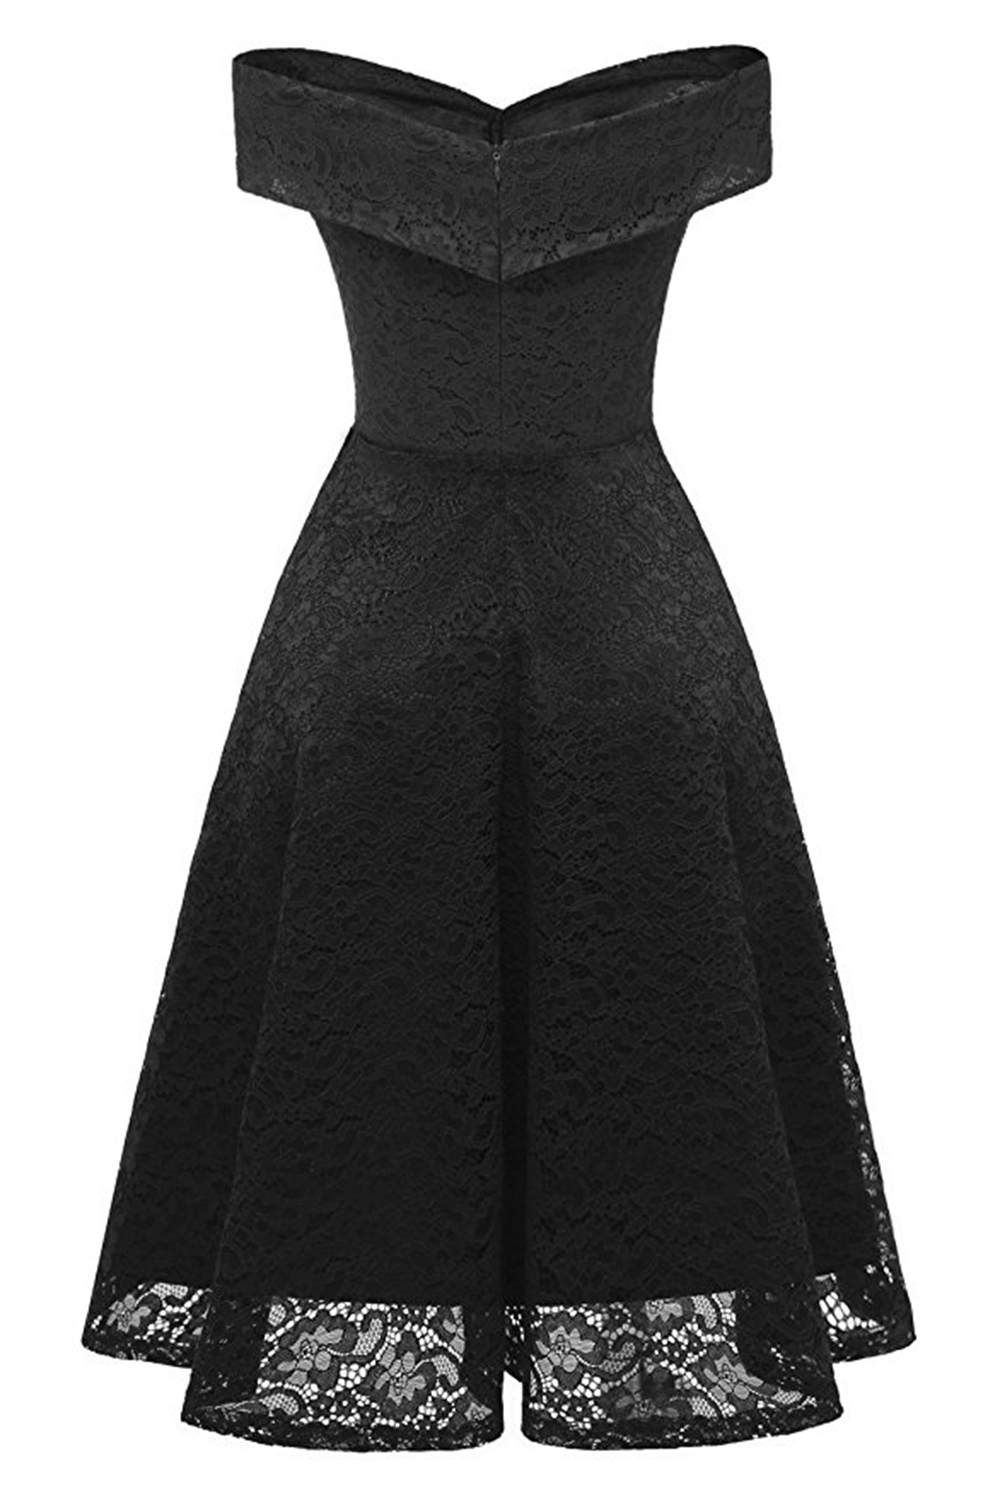 Cocktail Dresses elegant formal party dress A-Line V-Neckline lace Women 2018 Short Vestidos Sexy Women Homecoming Dresses 10